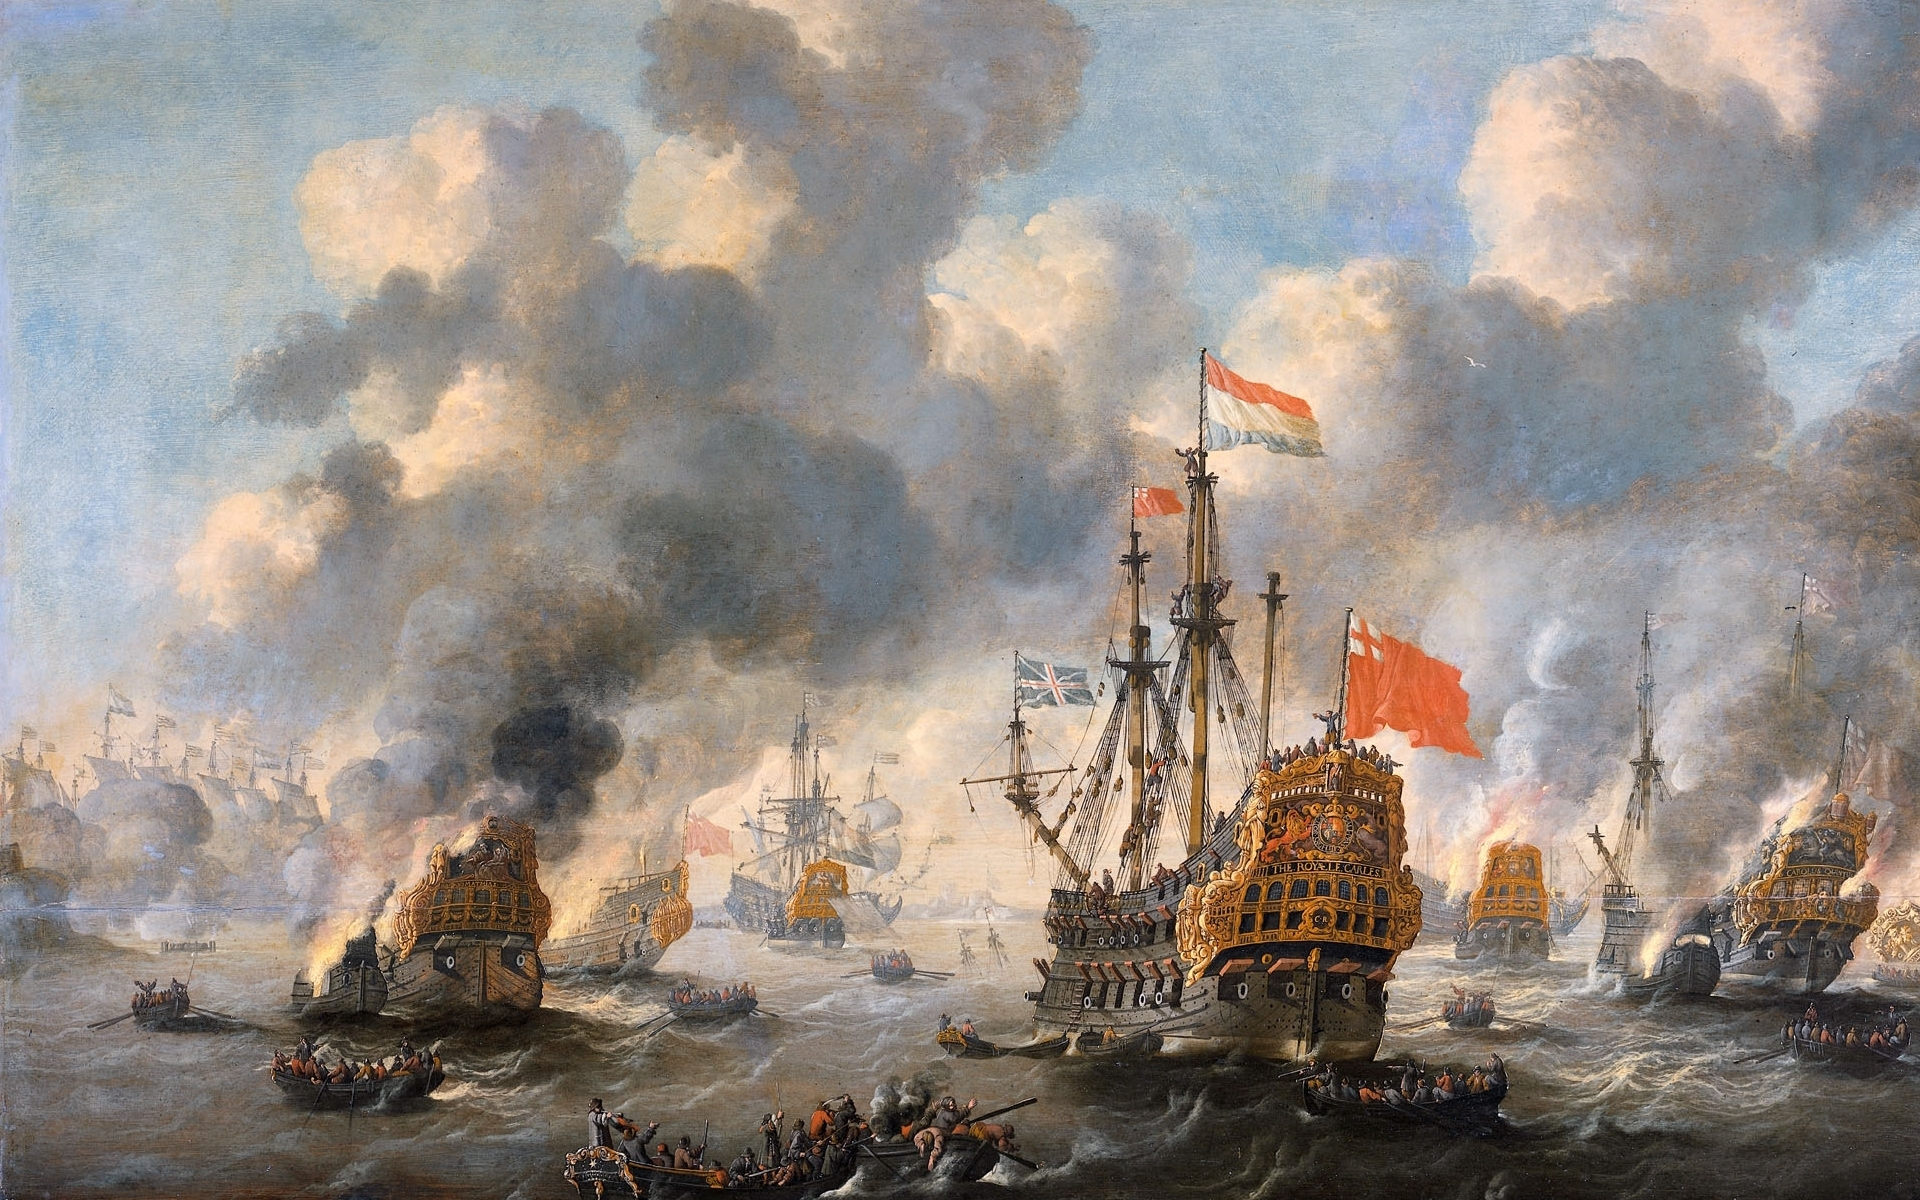 paintings ships battles artwork HD Wallpaper